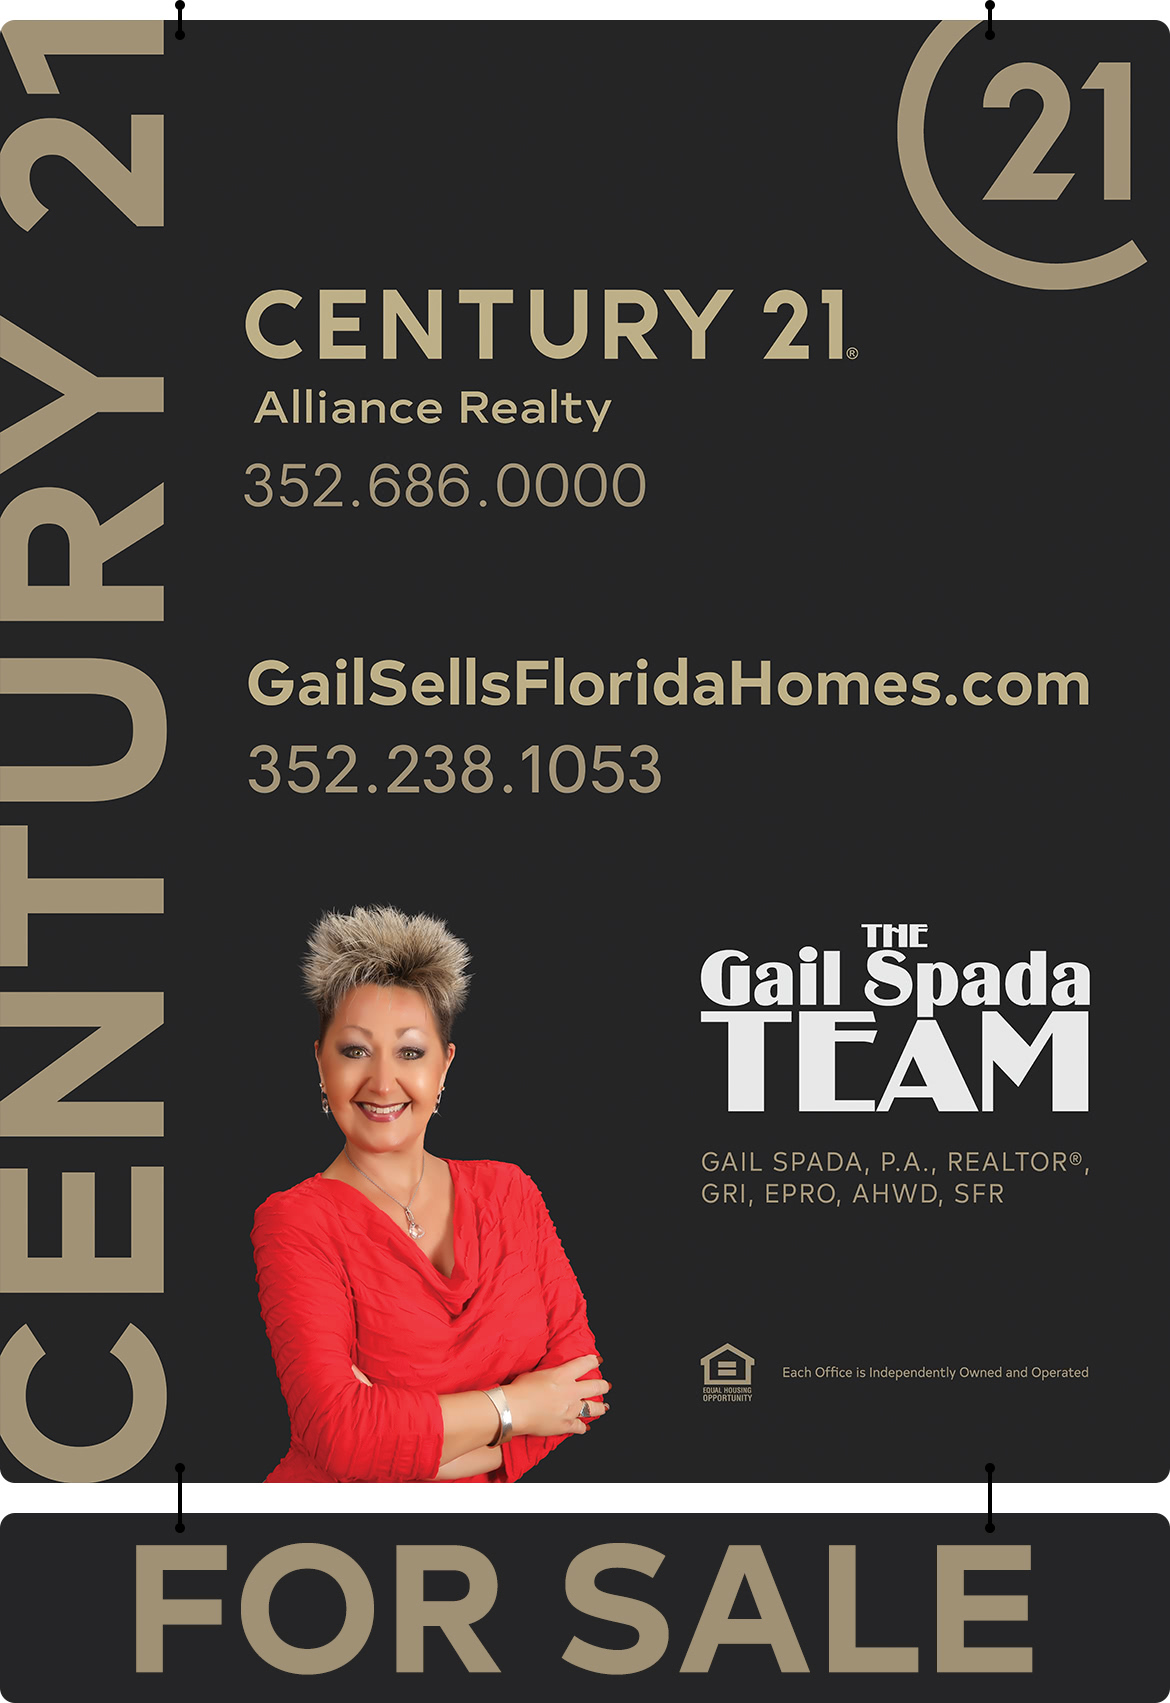 Buy your home with THE Gail Spada TEAM